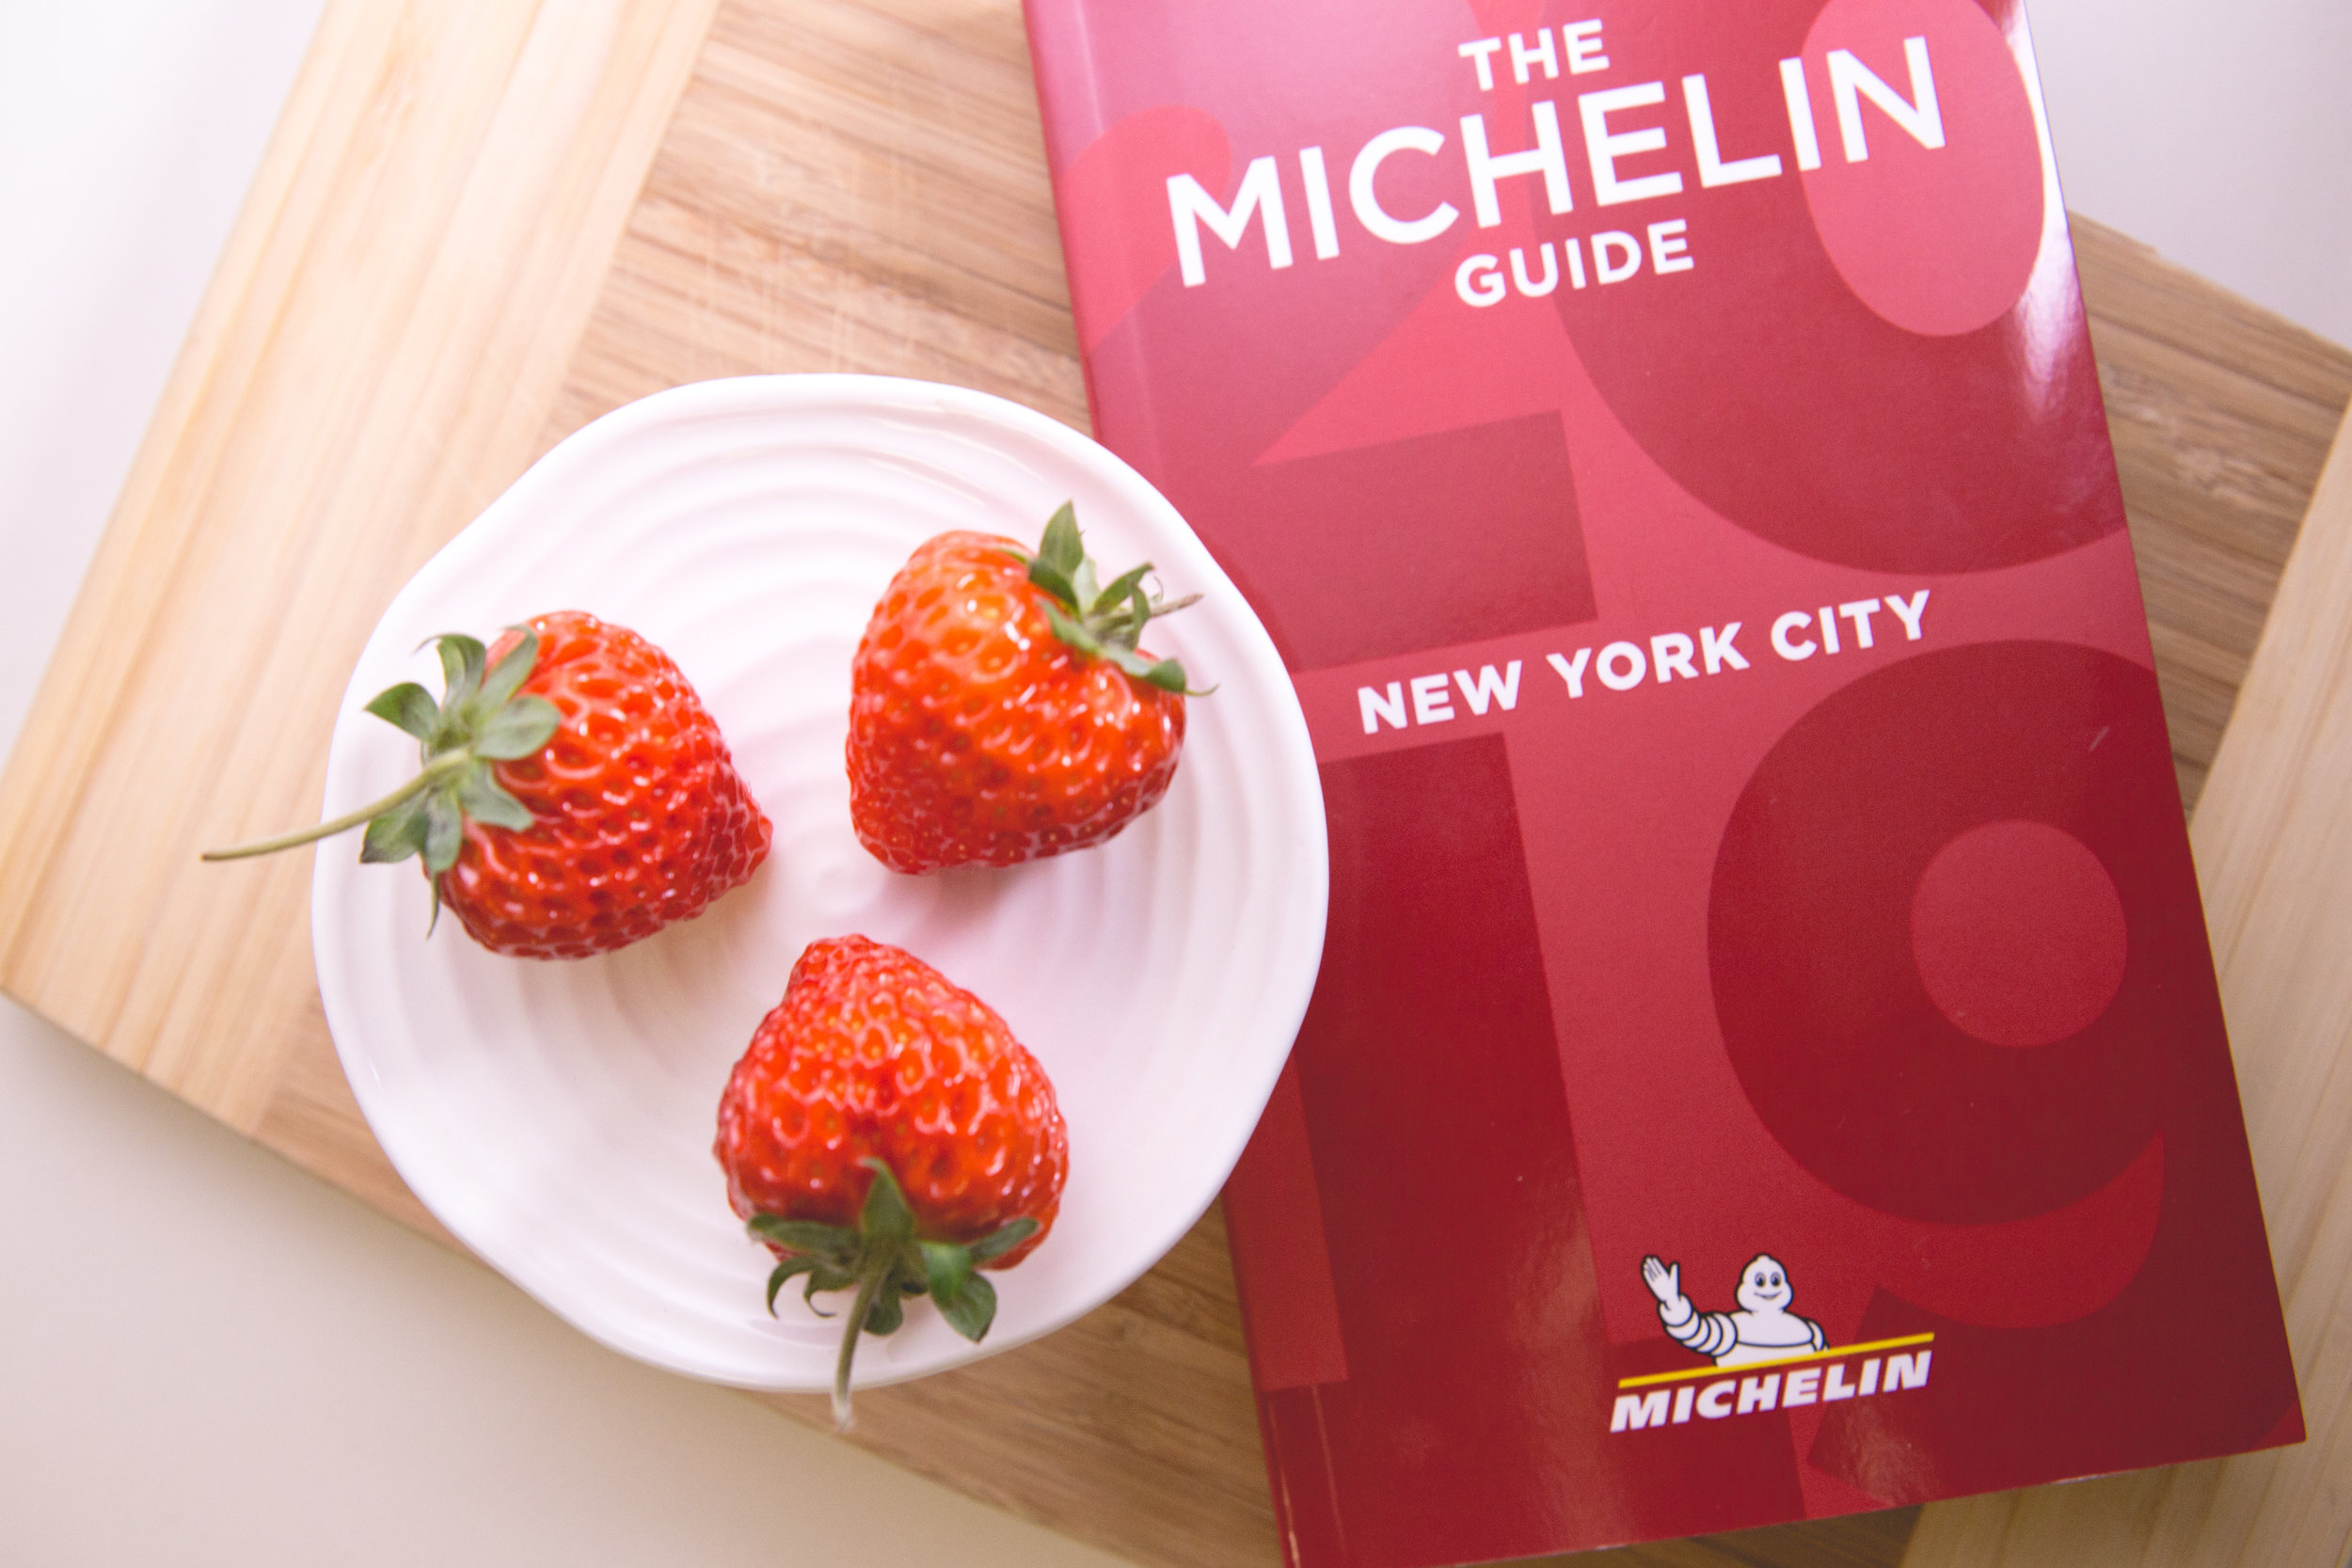 """""""Exceptional cuisine that is worth a special journey."""" Congratulations to Chef's Table at Brooklyn Fare for once again attaining 3 Michelin stars. Kudos to Chef Ramirez and his team's dedication to perfection."""